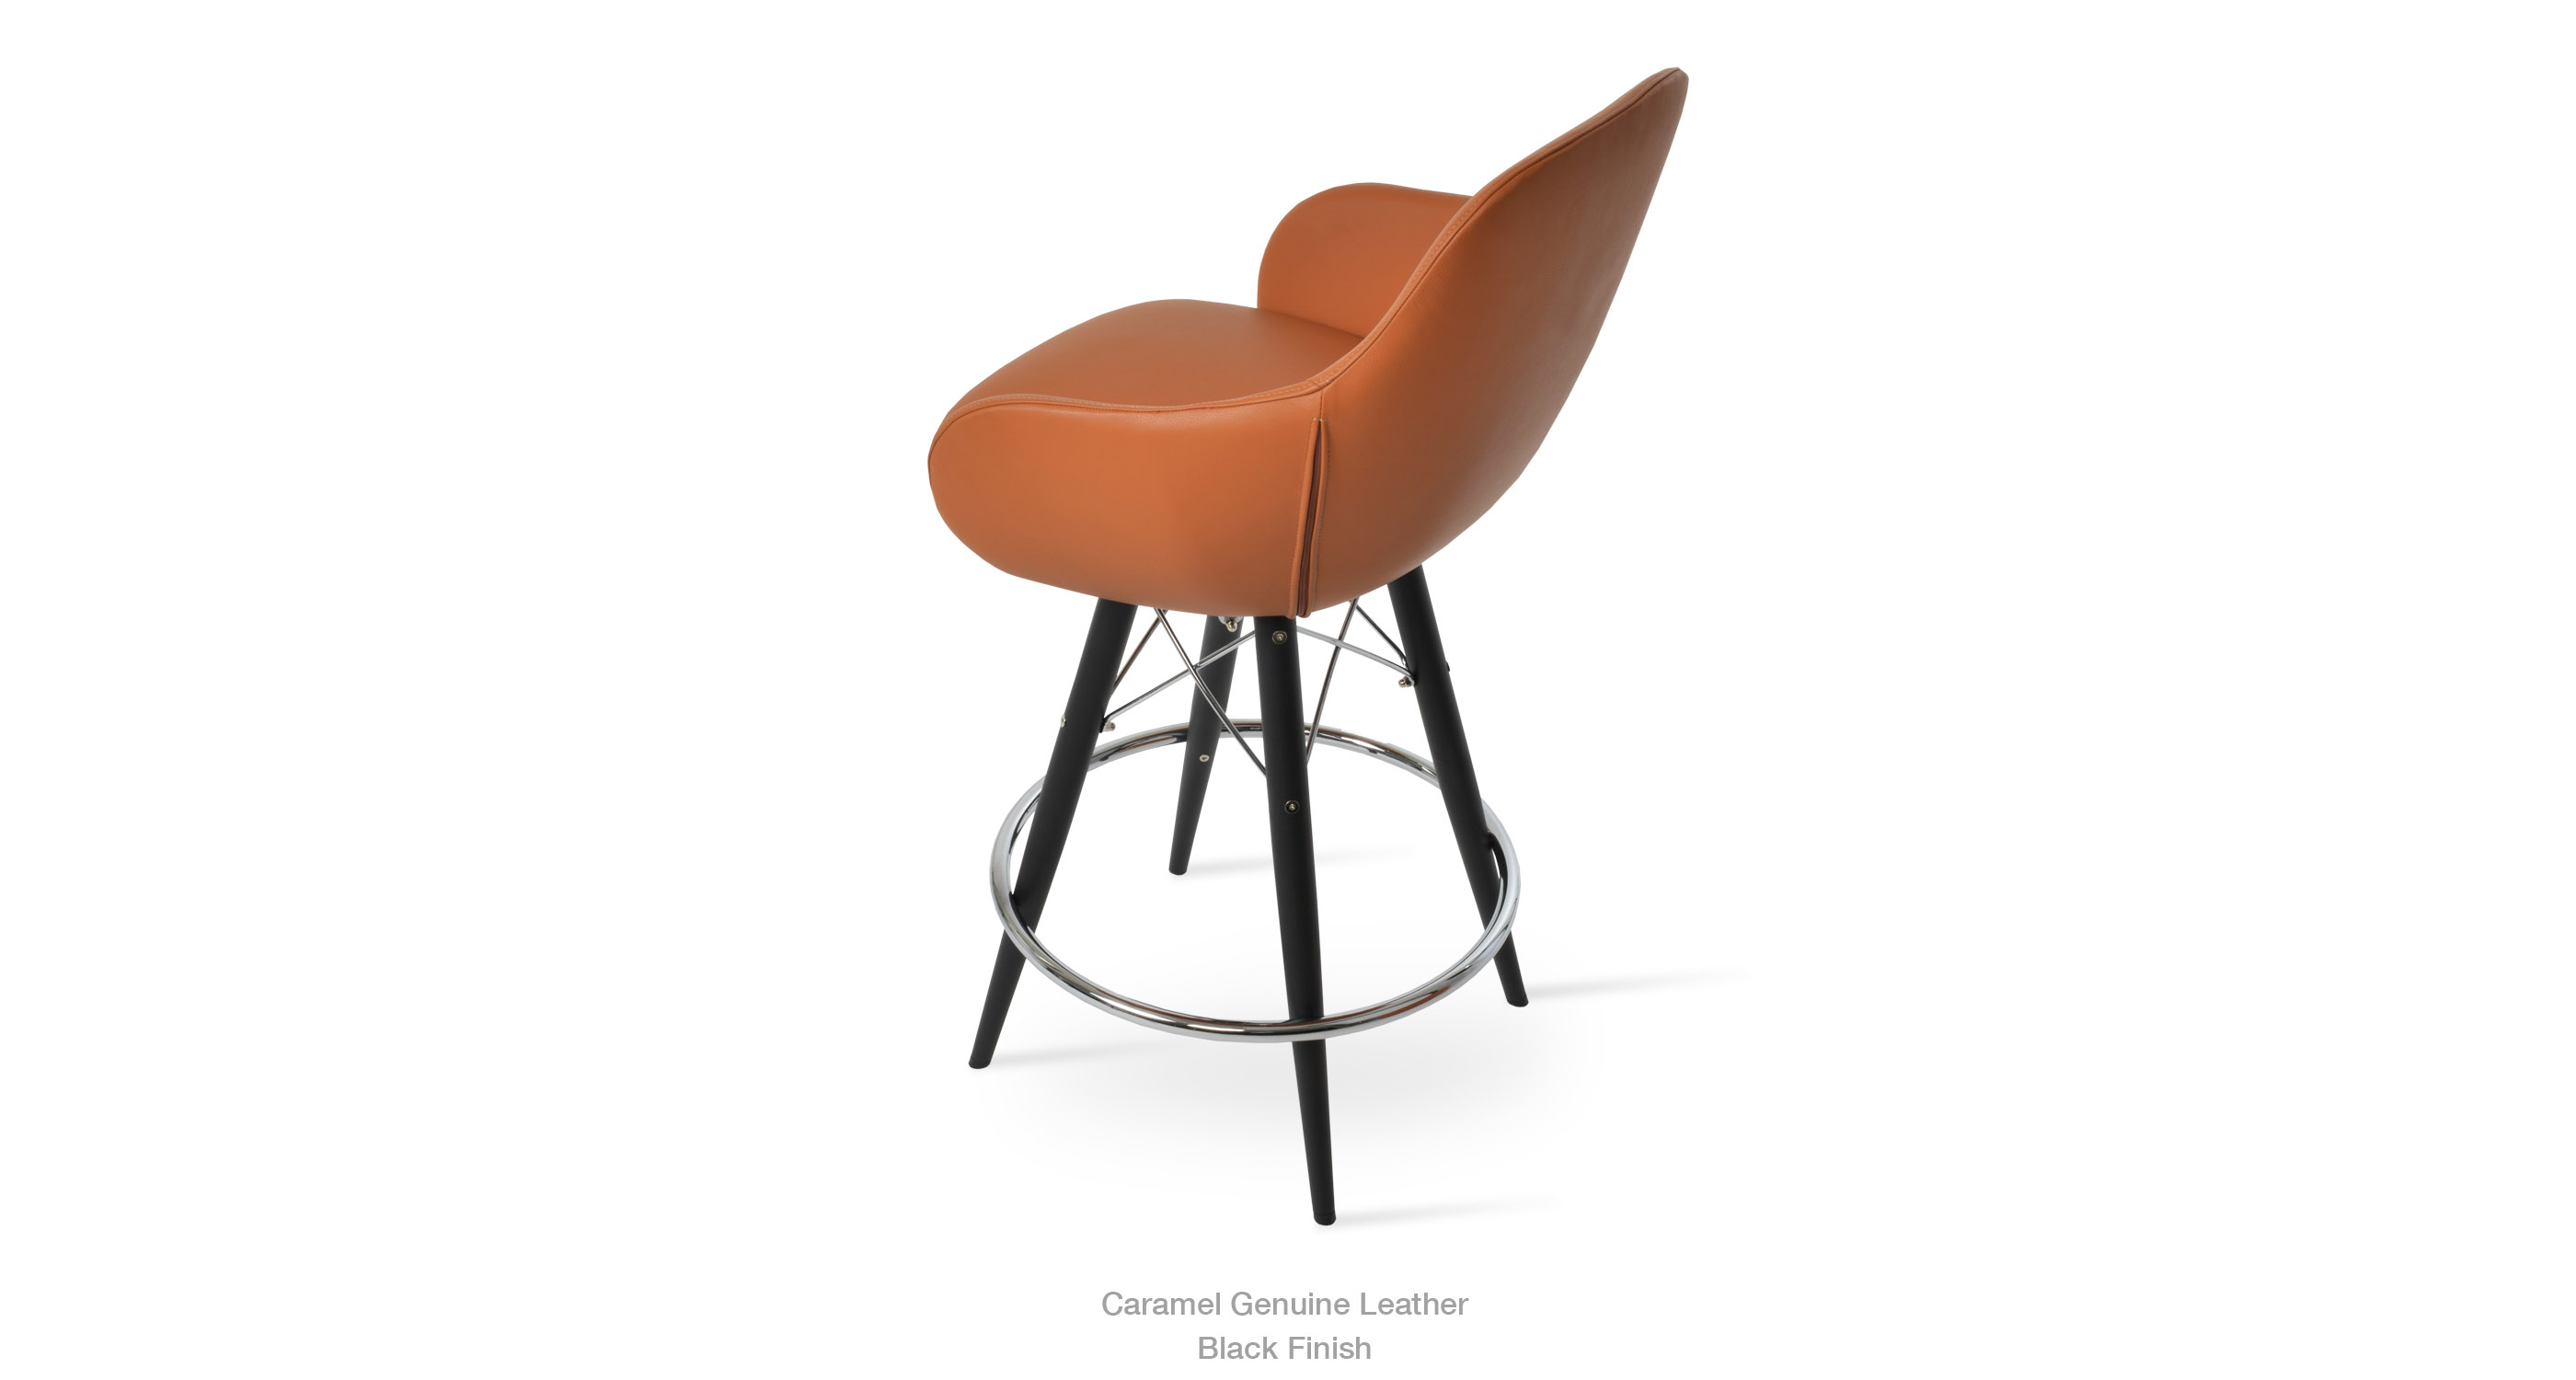 12 11 20 Gazel Arm Mw Stool Caramel